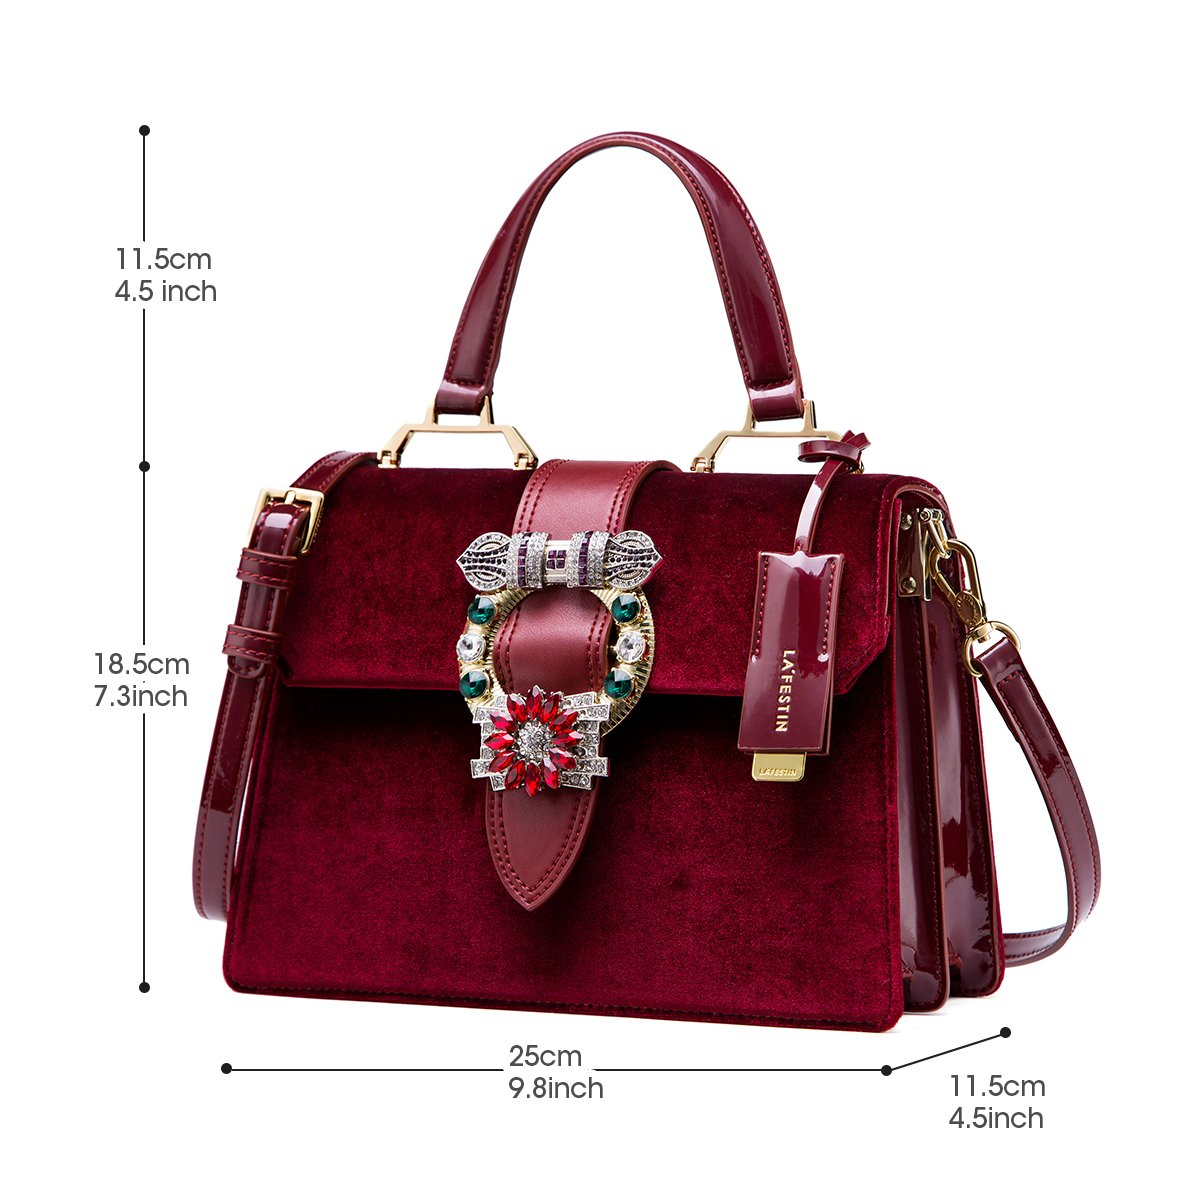 27ae479379a7 Amazon.com  LA FESTIN Vintage Burgundy Bags for Women Velvet Leather Shoulder  Purses with Jewels Red  LAFESTIN